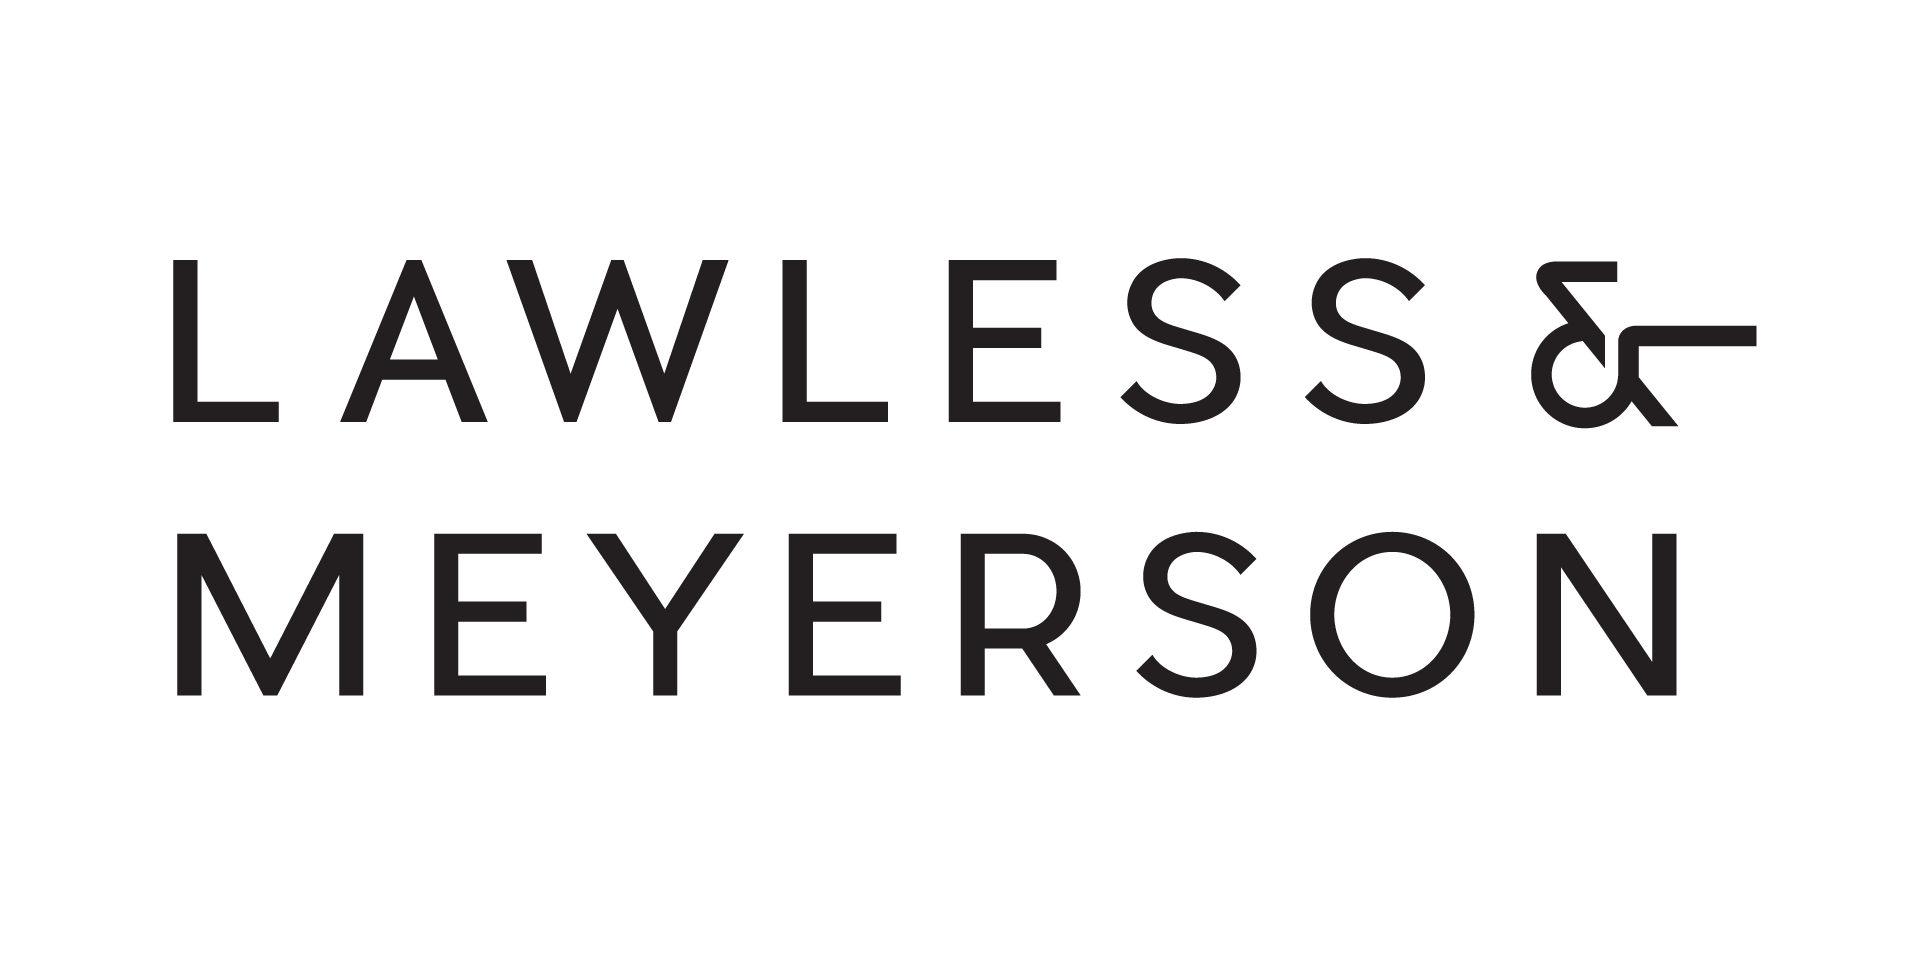 Lawless & Meyerson specialises in creating beautiful spaces for people to live in and enjoy. Each commission is treated individually, collaborating with clients to enrich their experience throughout the design and building process through to completion.